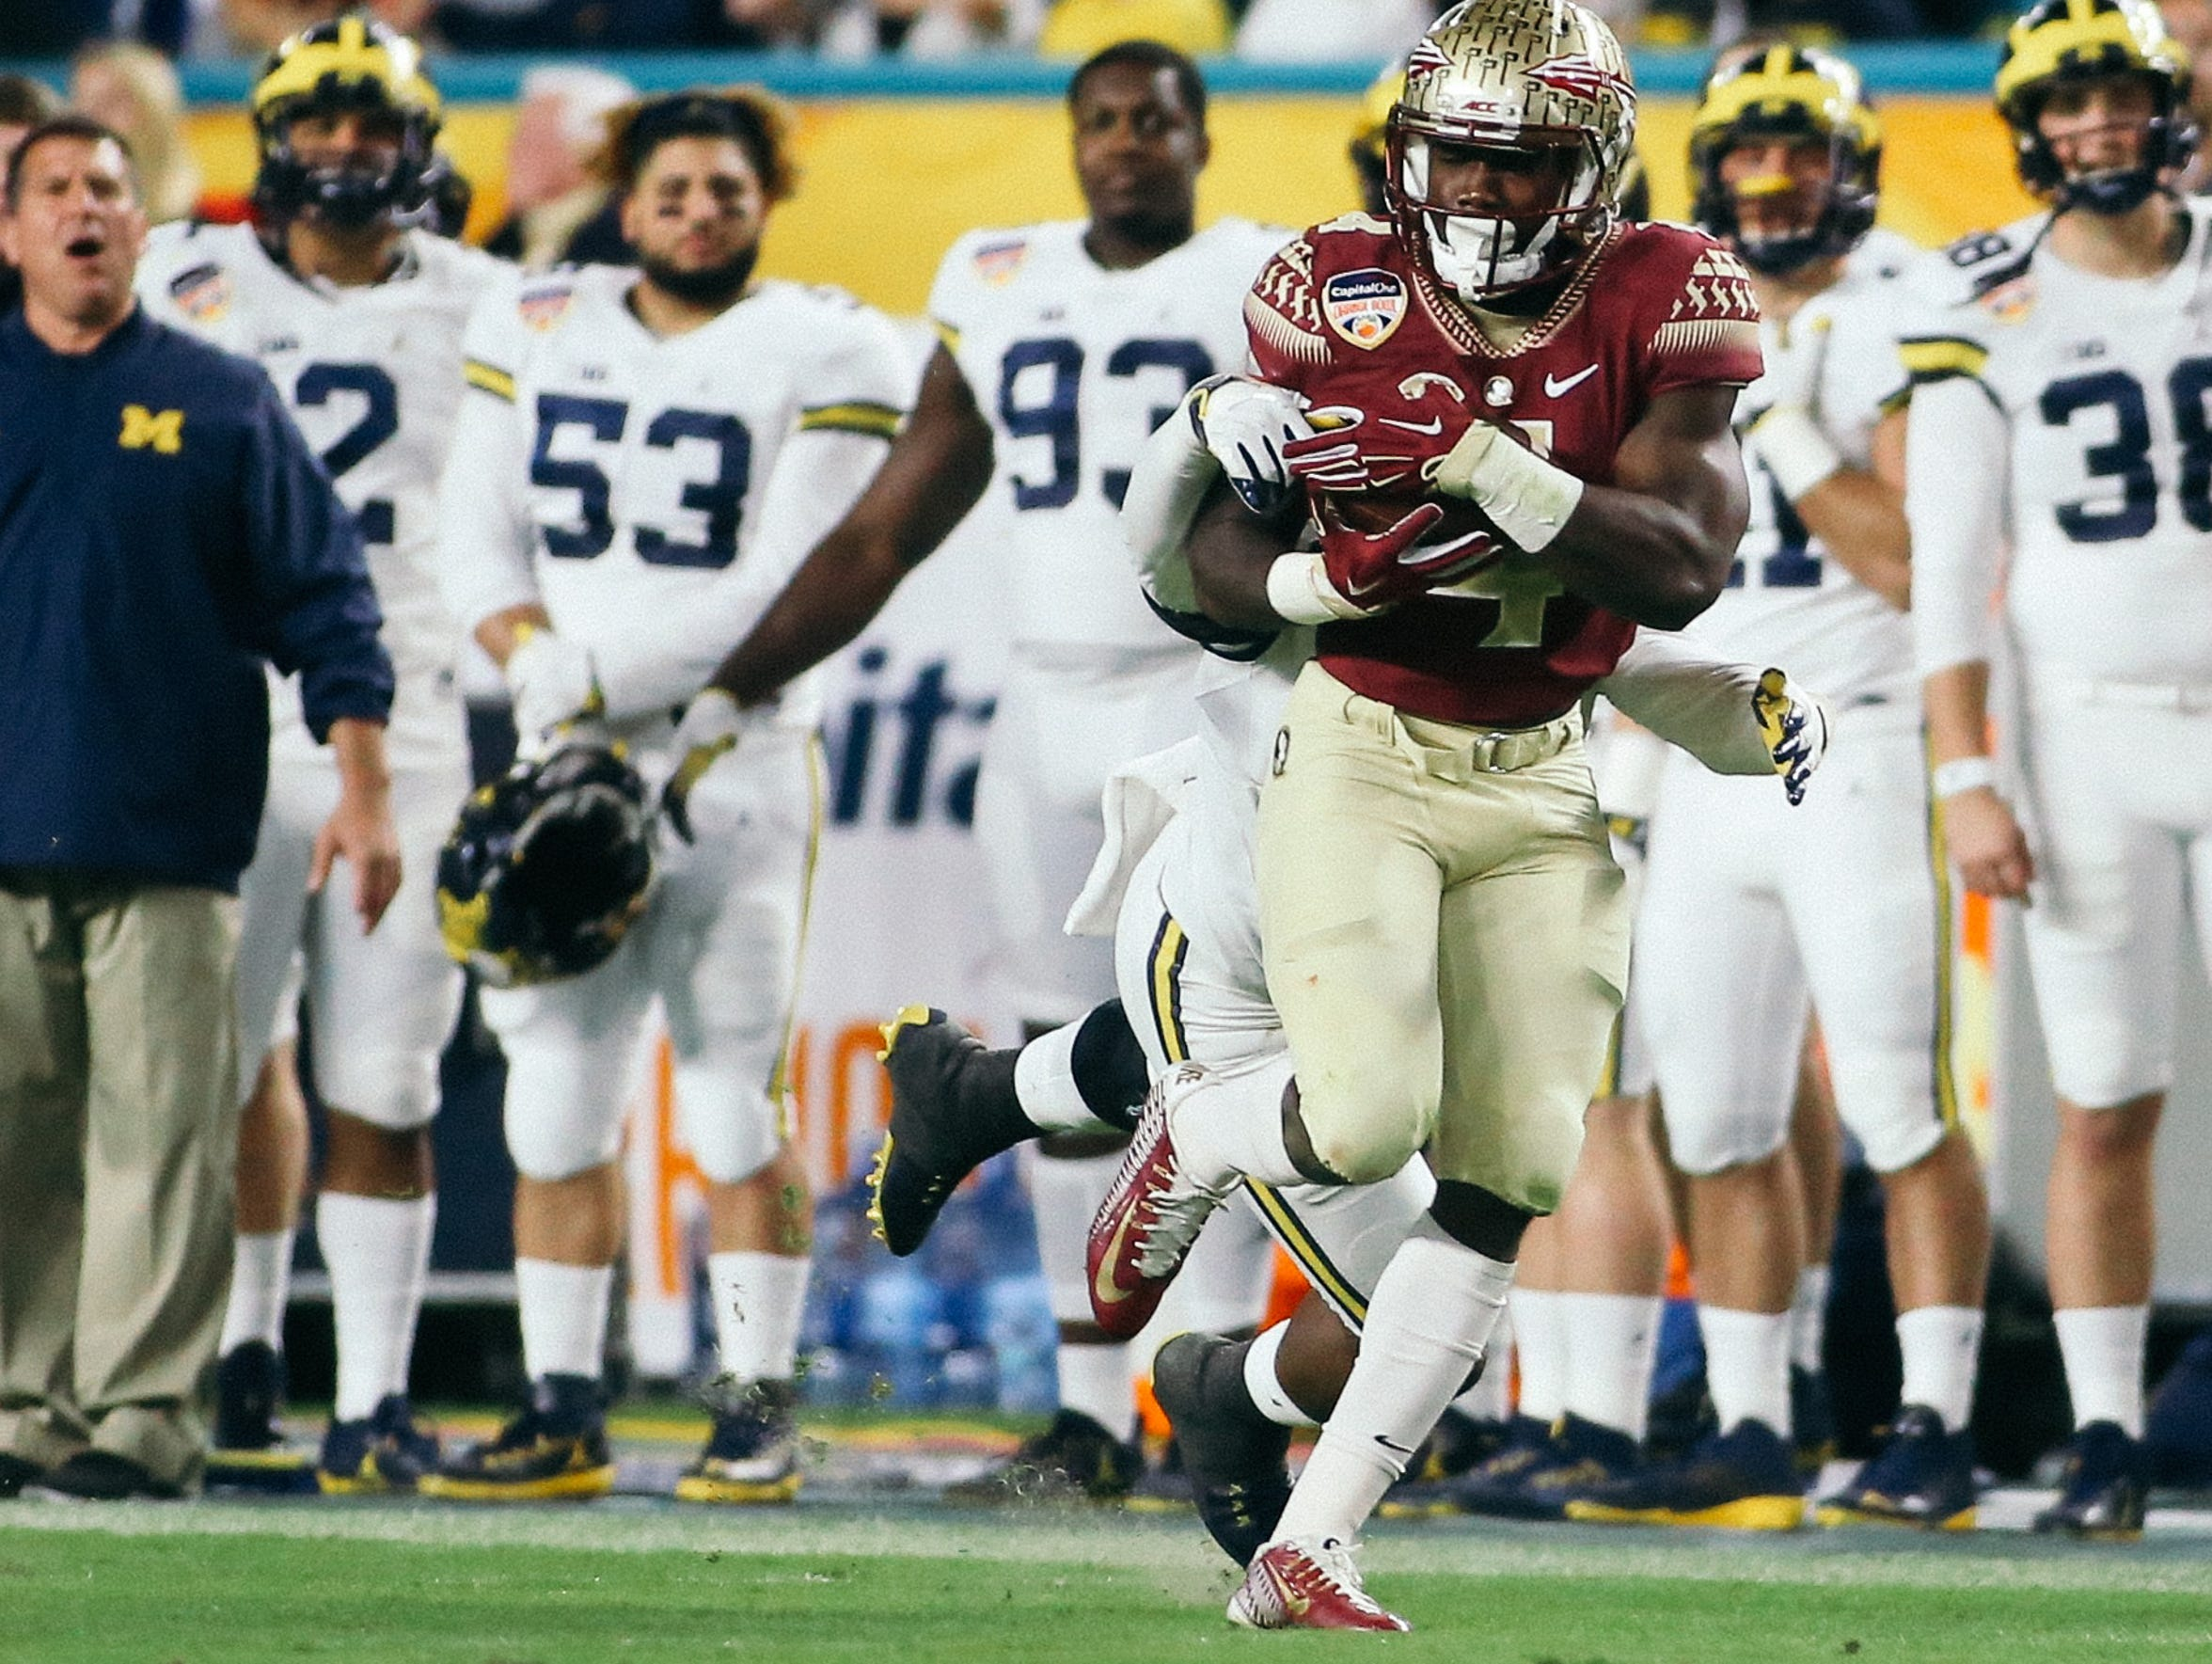 Dalvin Cook (4) catches a pass during the first half